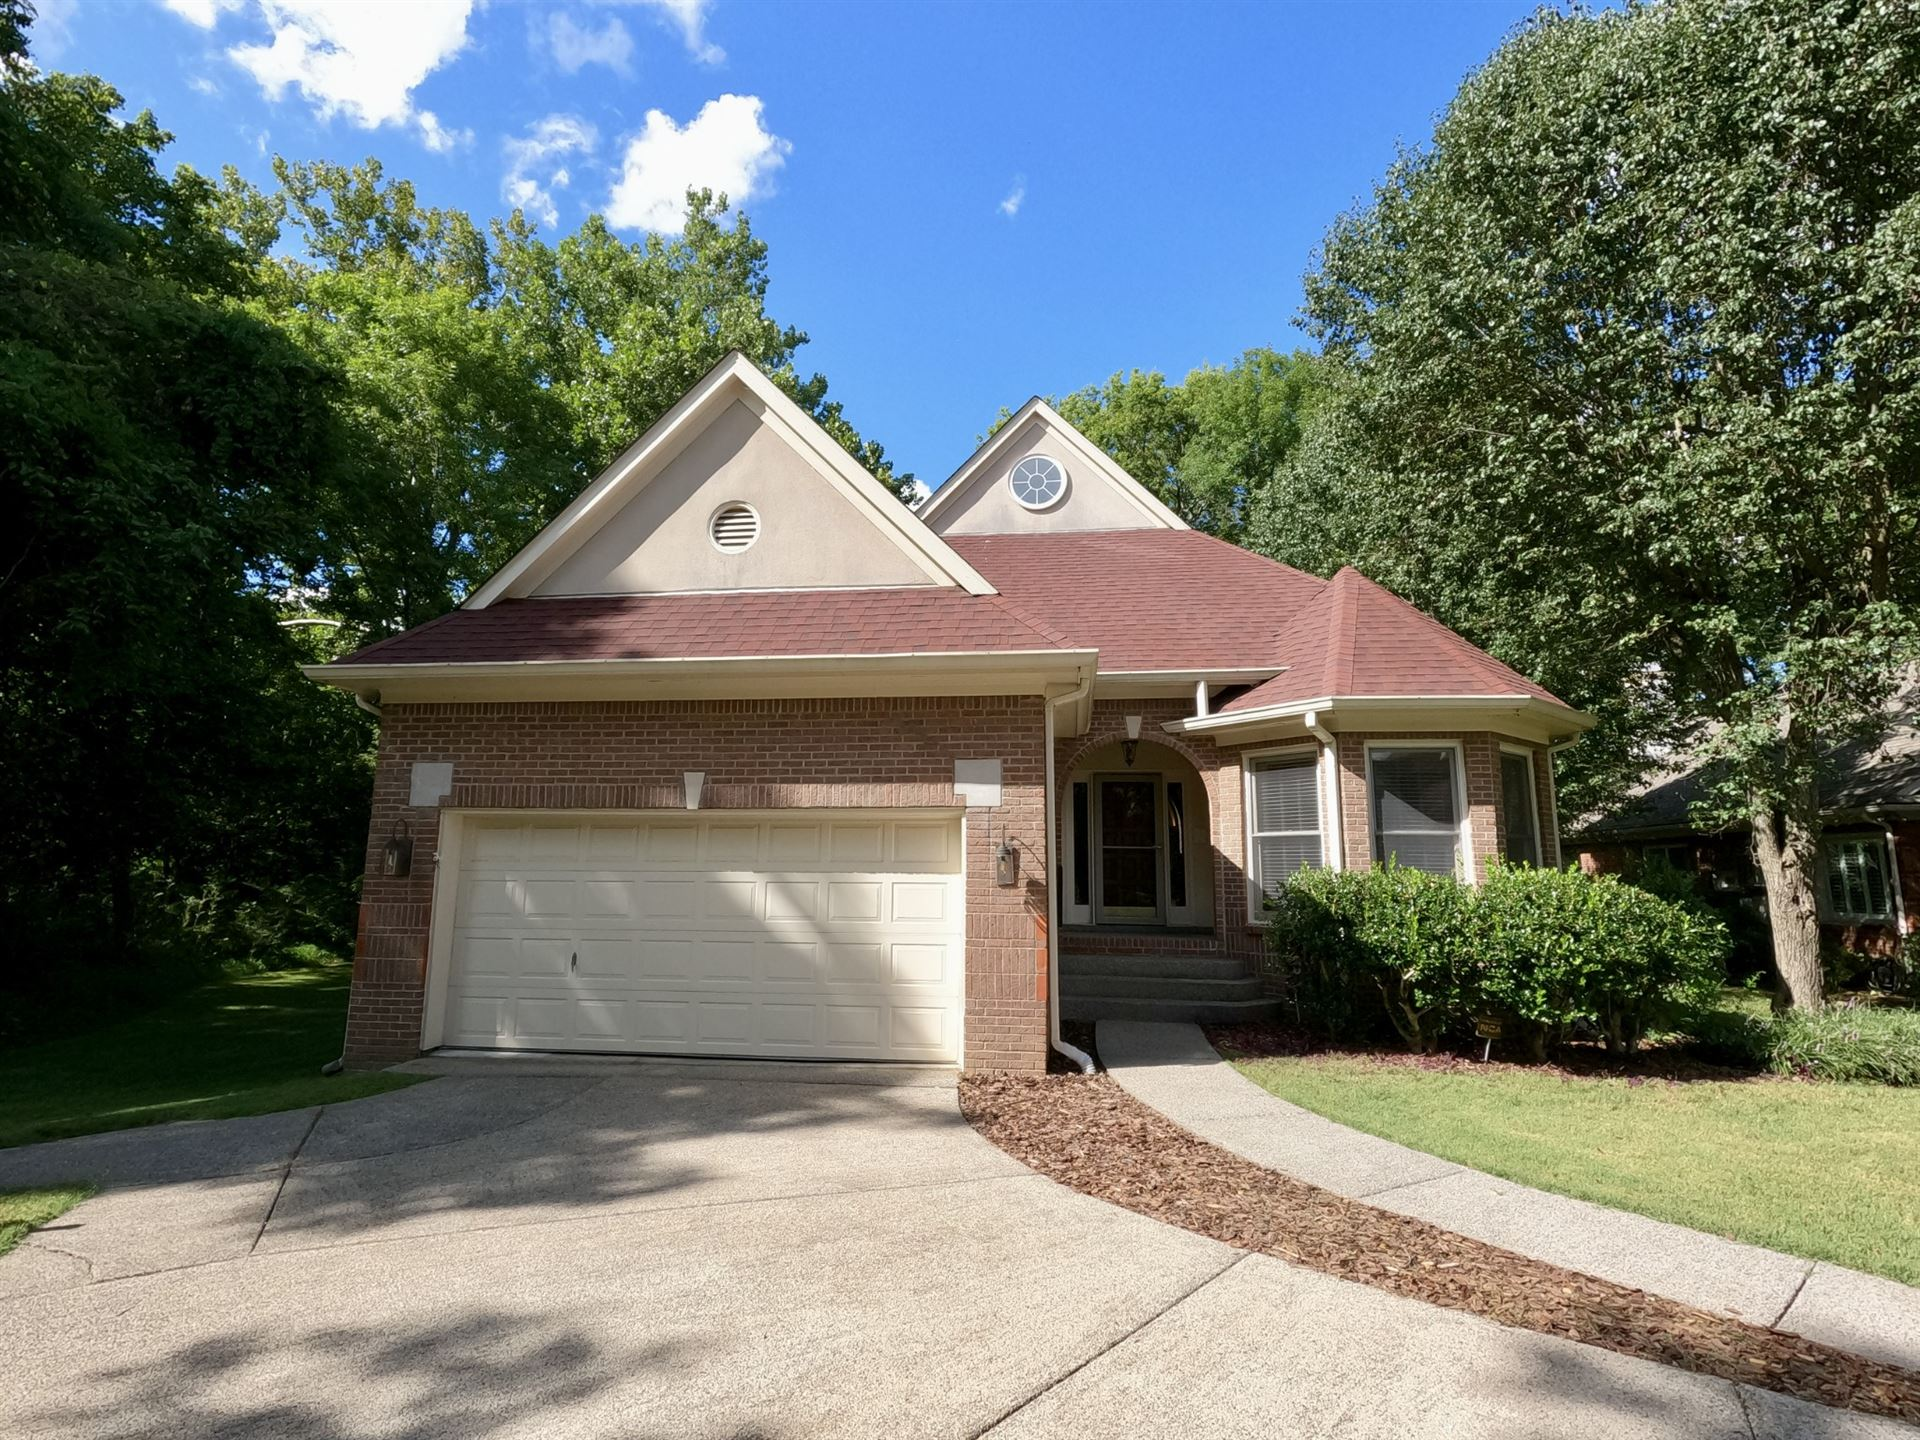 6 Todgers Ct, Brentwood, TN 37027 - MLS#: 2290811